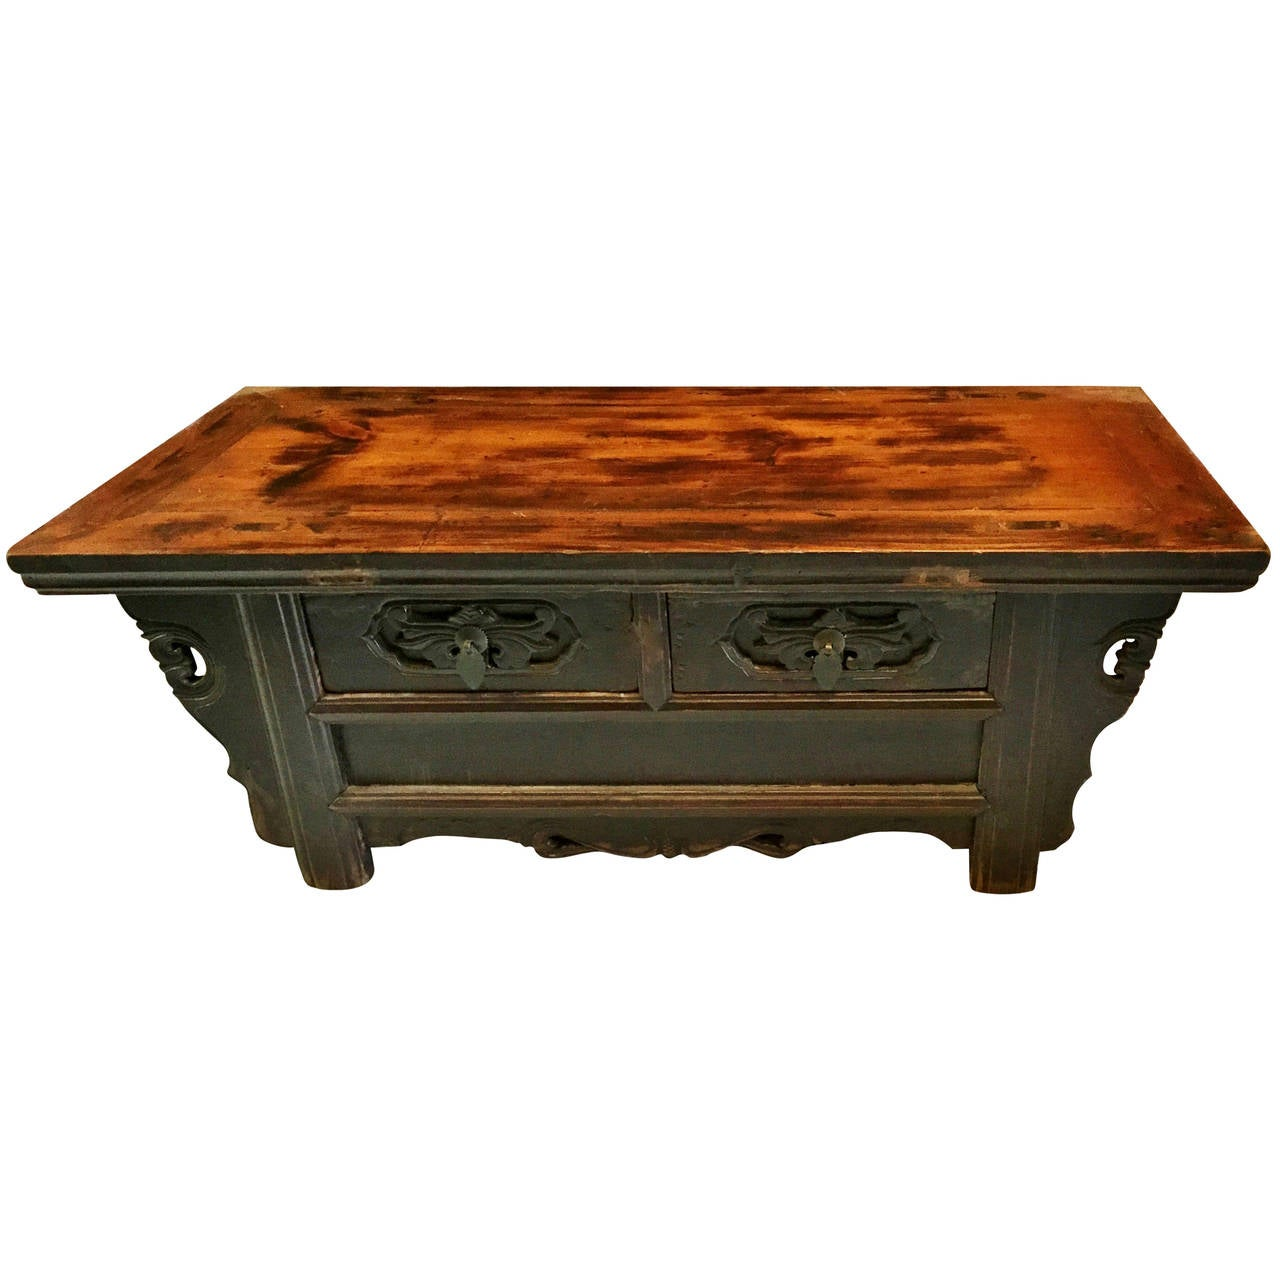 Low Tables For Sale Chinese Antique Low Meditation Table Or Chest For Sale At